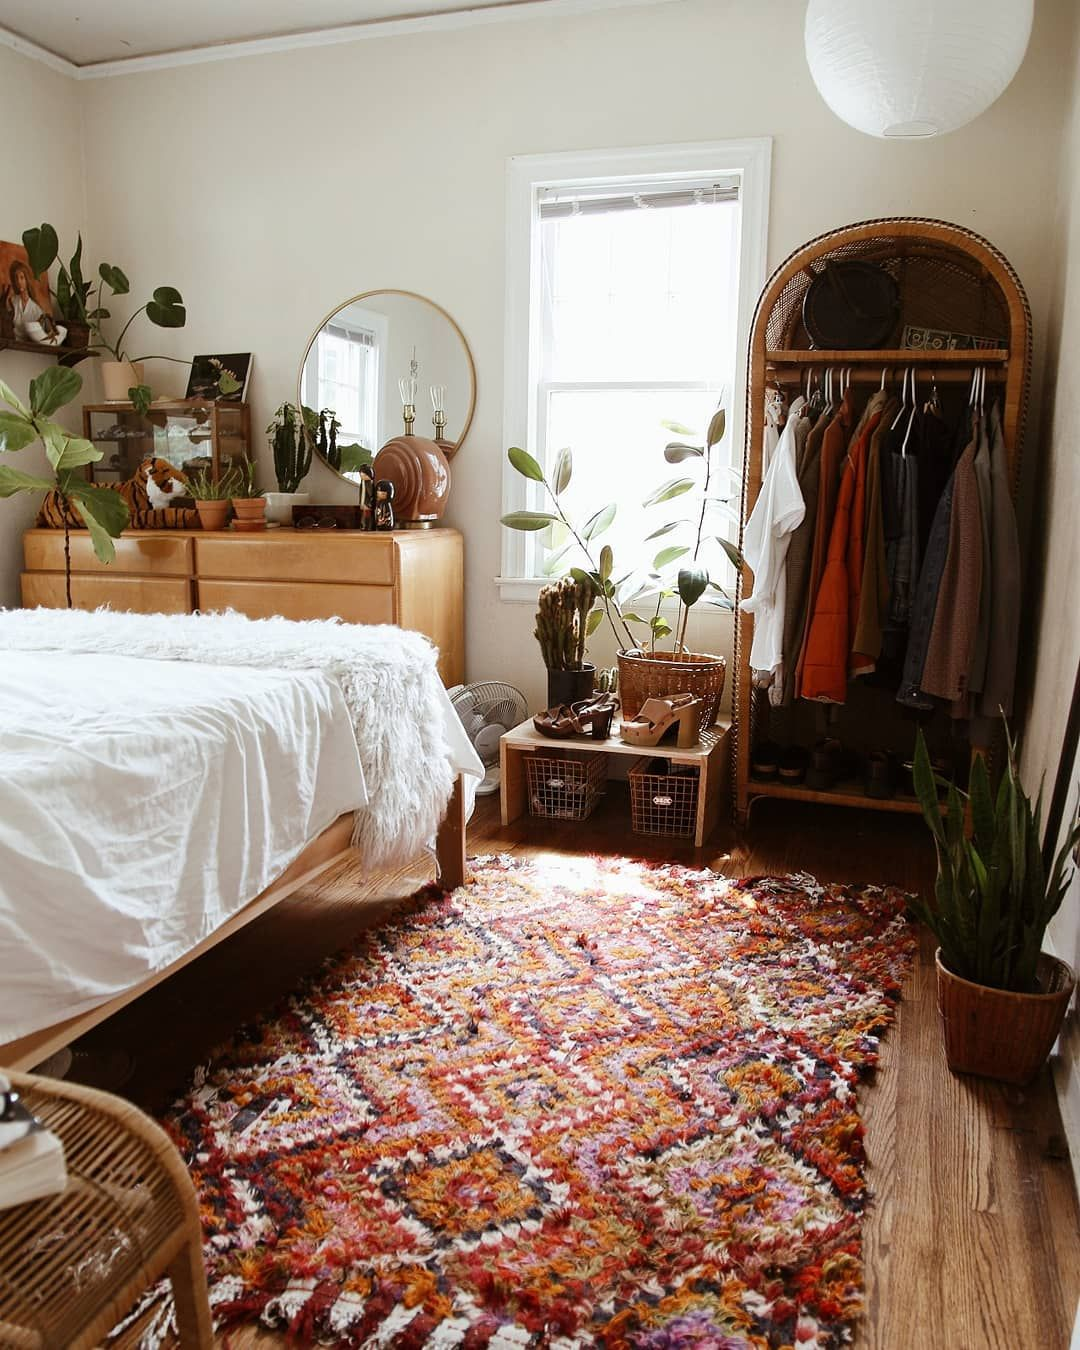 Danielle And Philip On Instagram Home Textures Tattered Rugs Are My Absolute Favorite Joandjune Lovethewayyouhome H Home Decor Home Bedroom Design